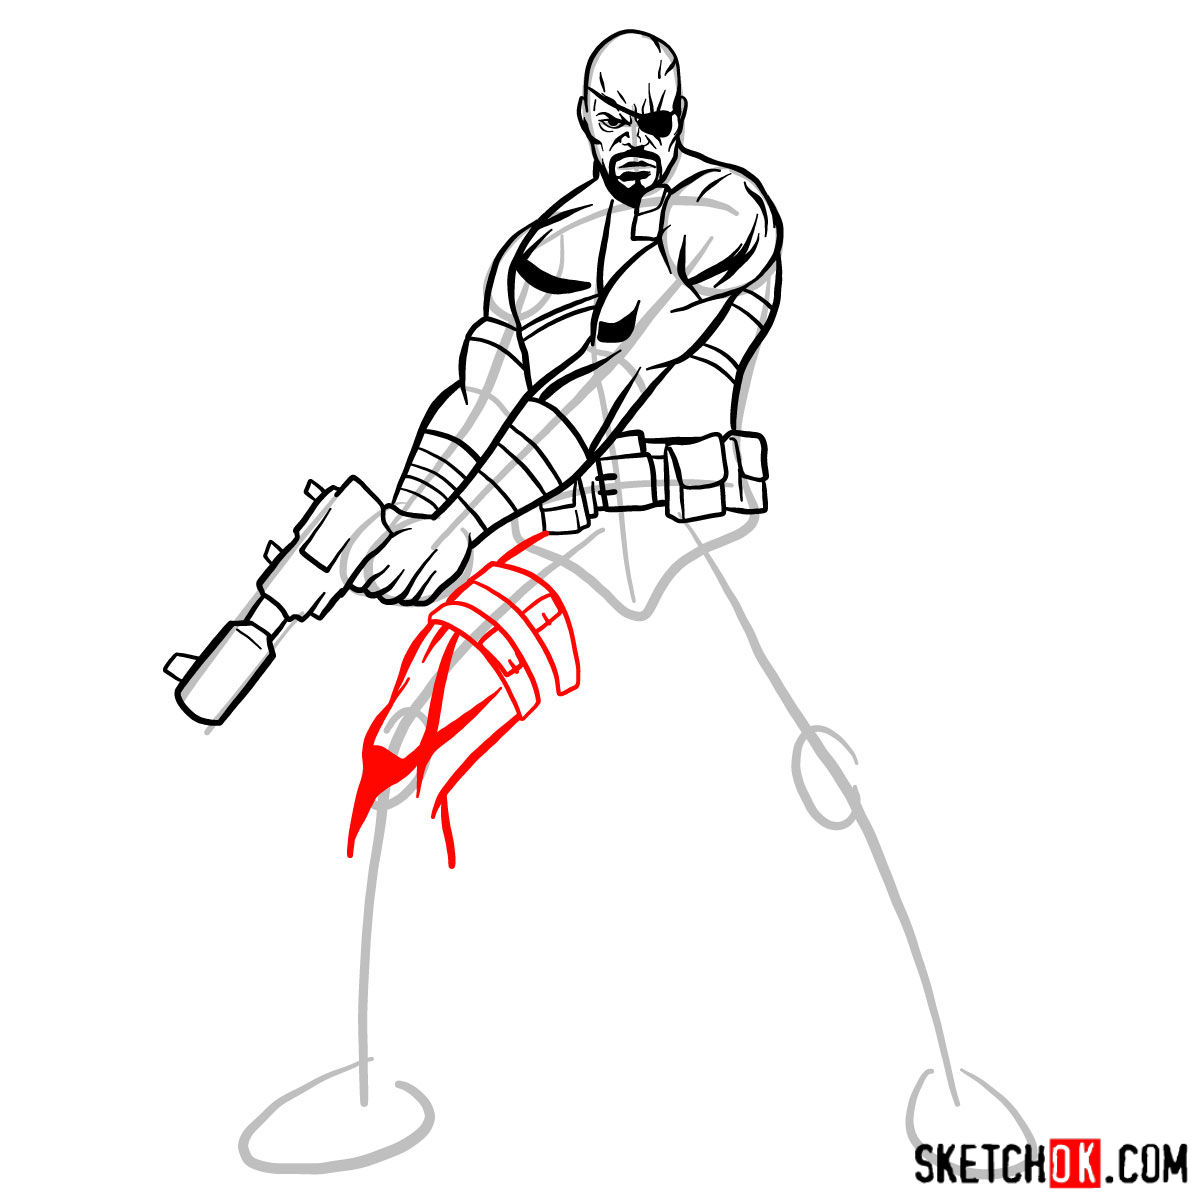 How to draw Nick Fury from the Avengers - step 11